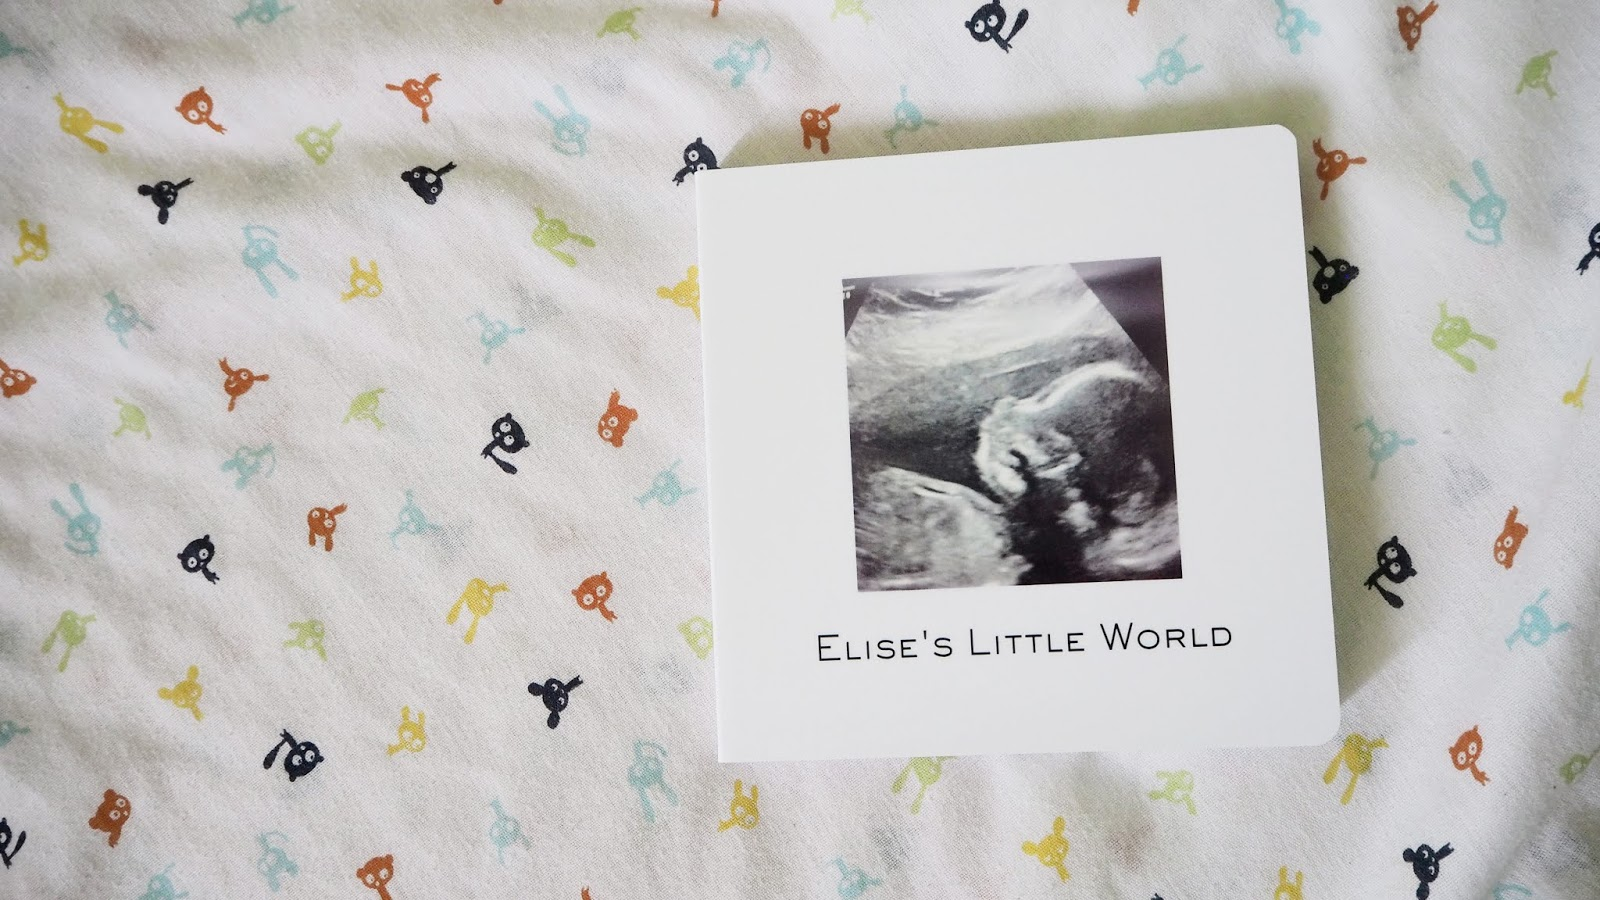 The photo book can be seen on a white background with little animals